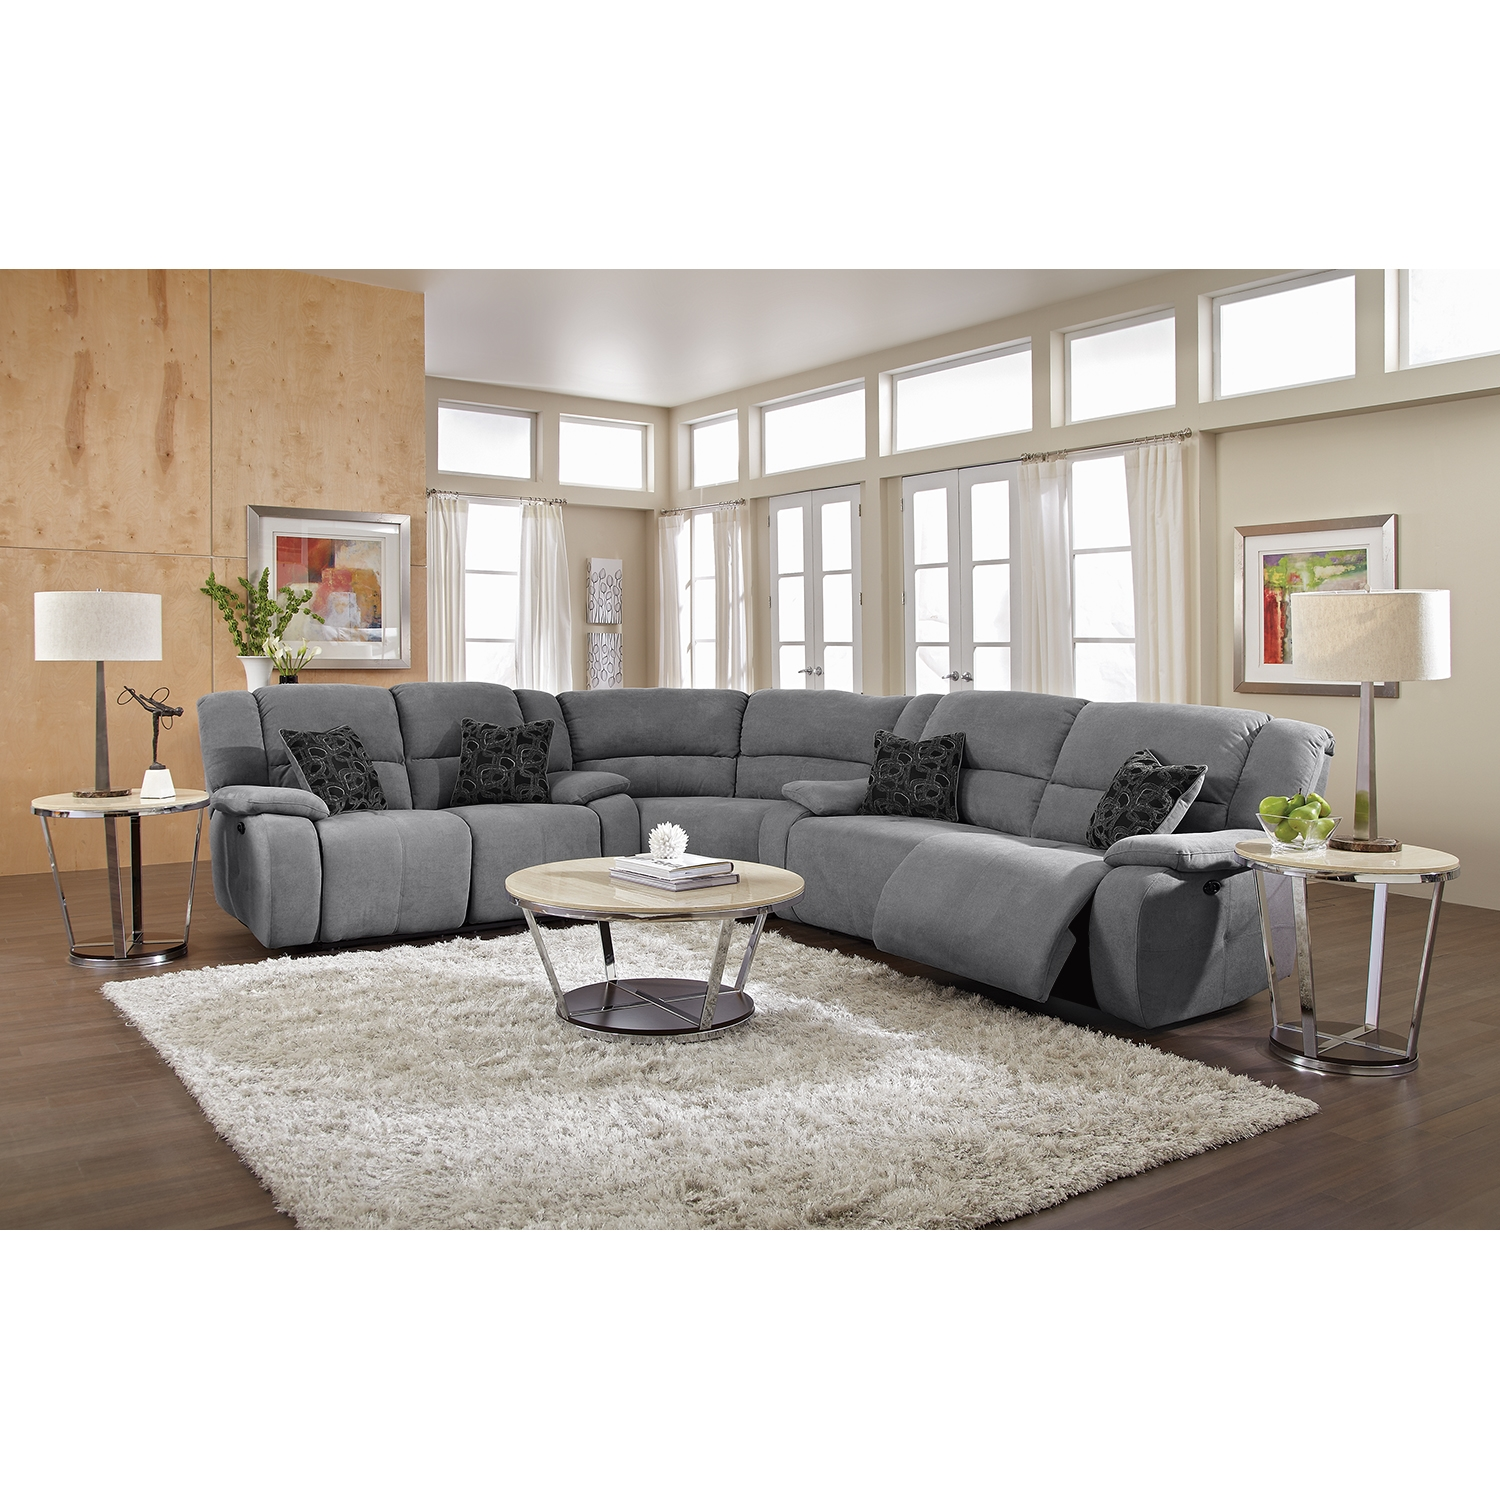 Sectional Couches with Recliners   U Shaped Sectional Sofa   Reclining  Sectional